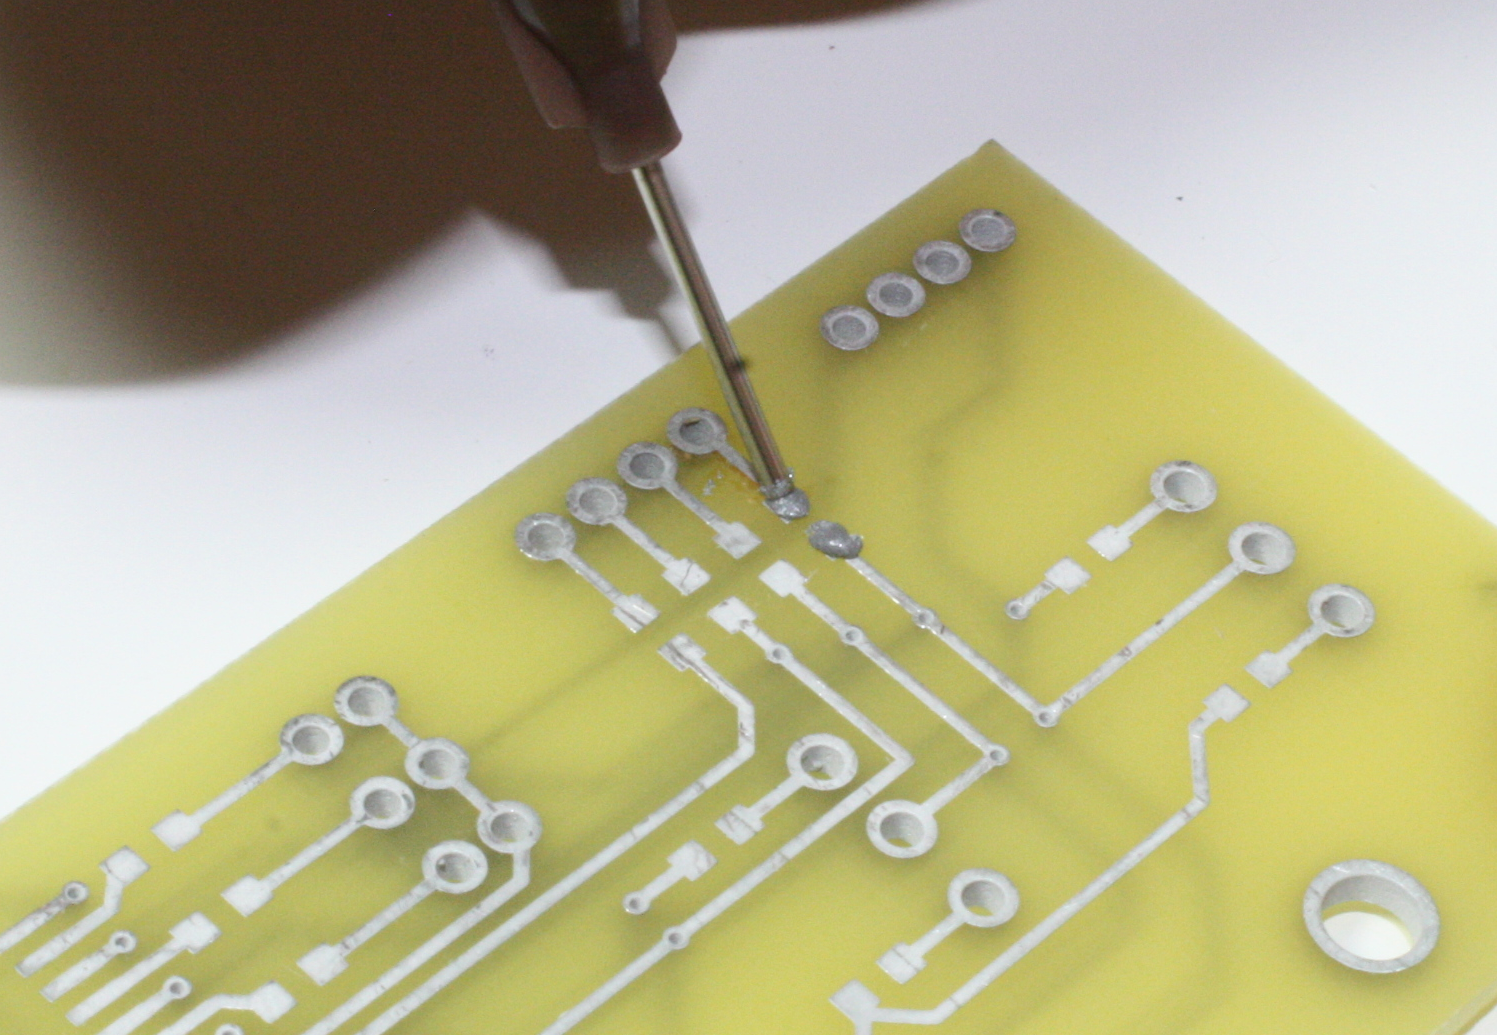 4 Tool Techniques Practical Electronics Components And Printed Circuit Board Rework Tfix Soldering Laboratories Applying Solder Paste